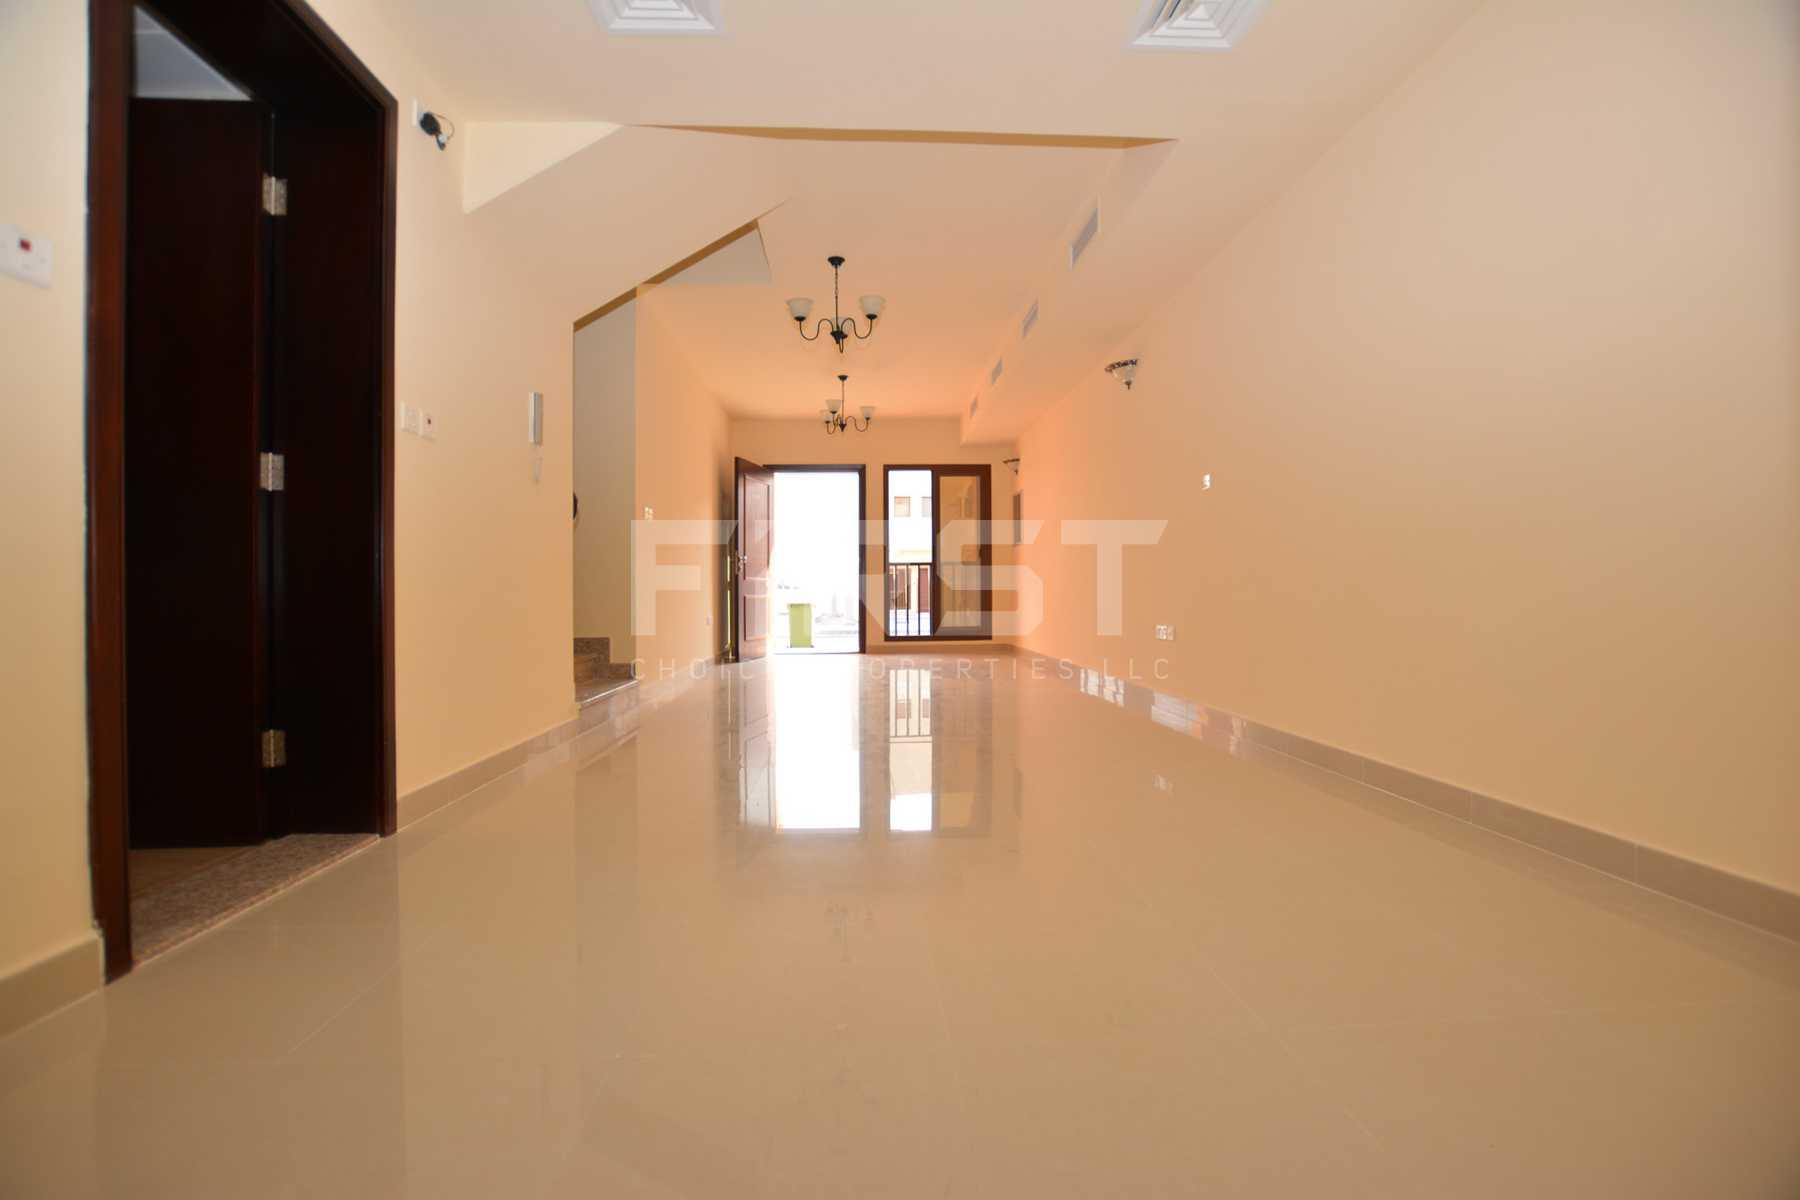 Internal Photo of 2 Bedroom Villa in Hydra Village Abu Dhabi UAE (7).jpg